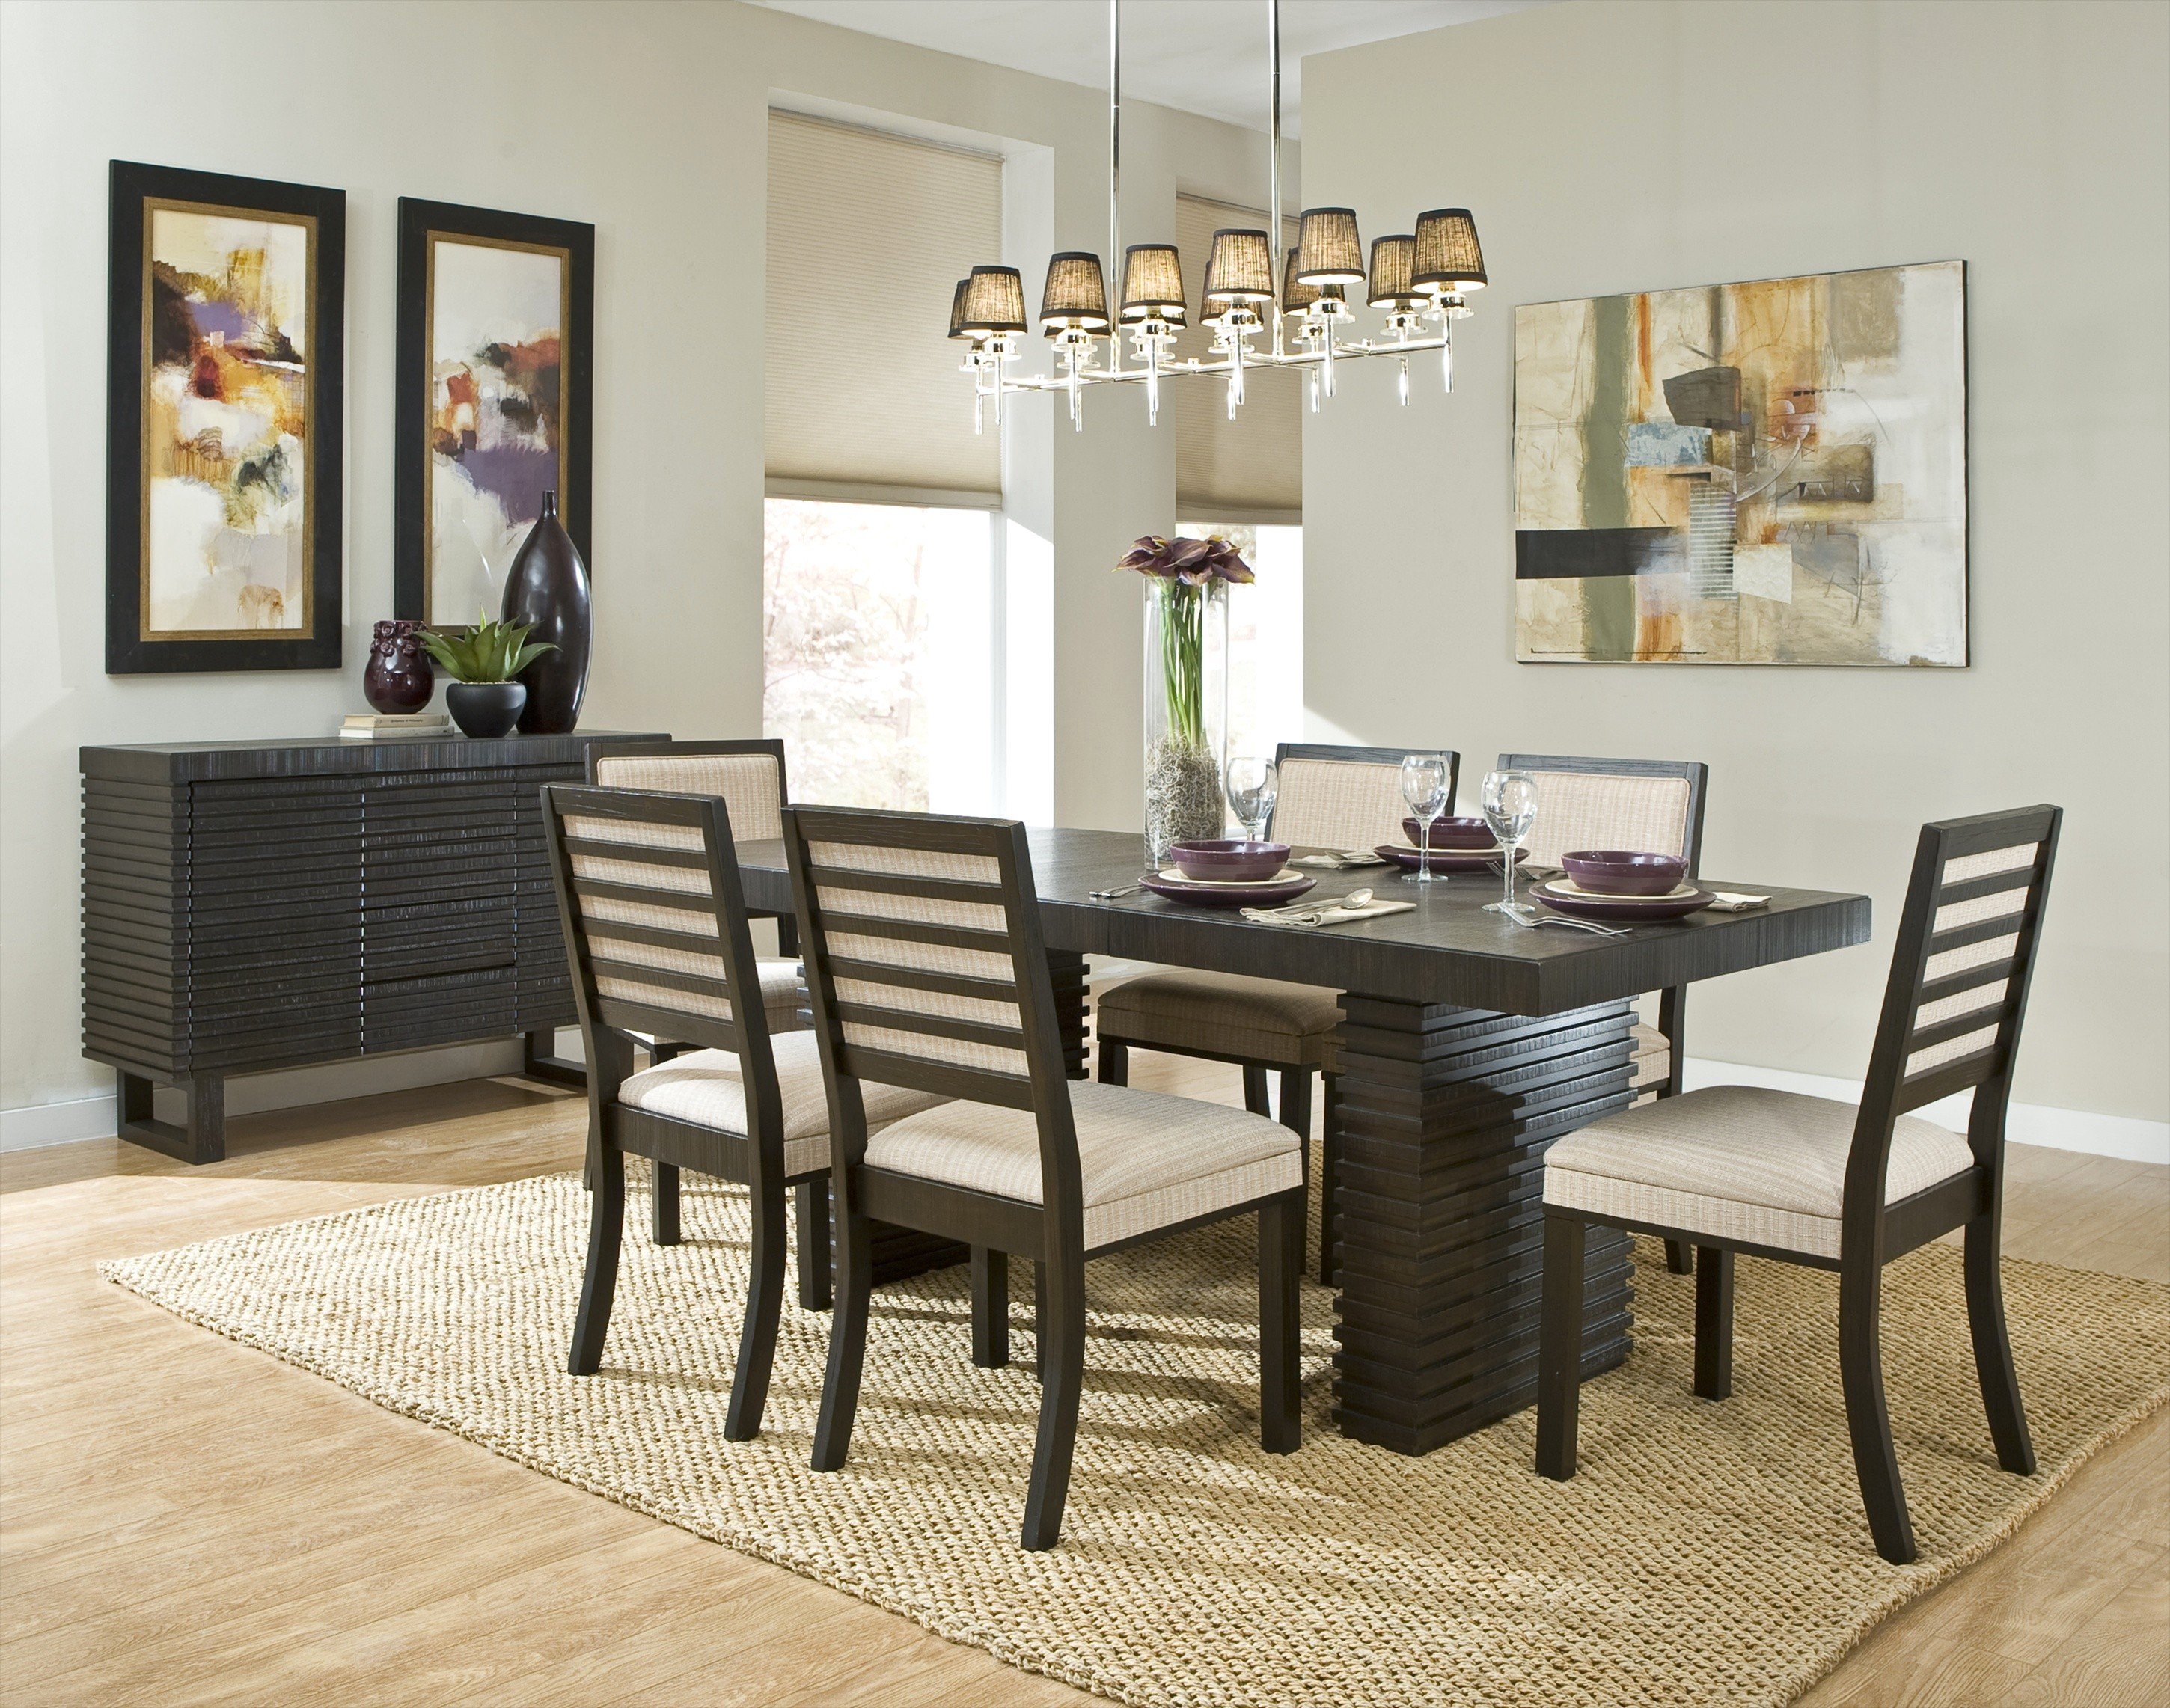 Dining Area With Modern Table